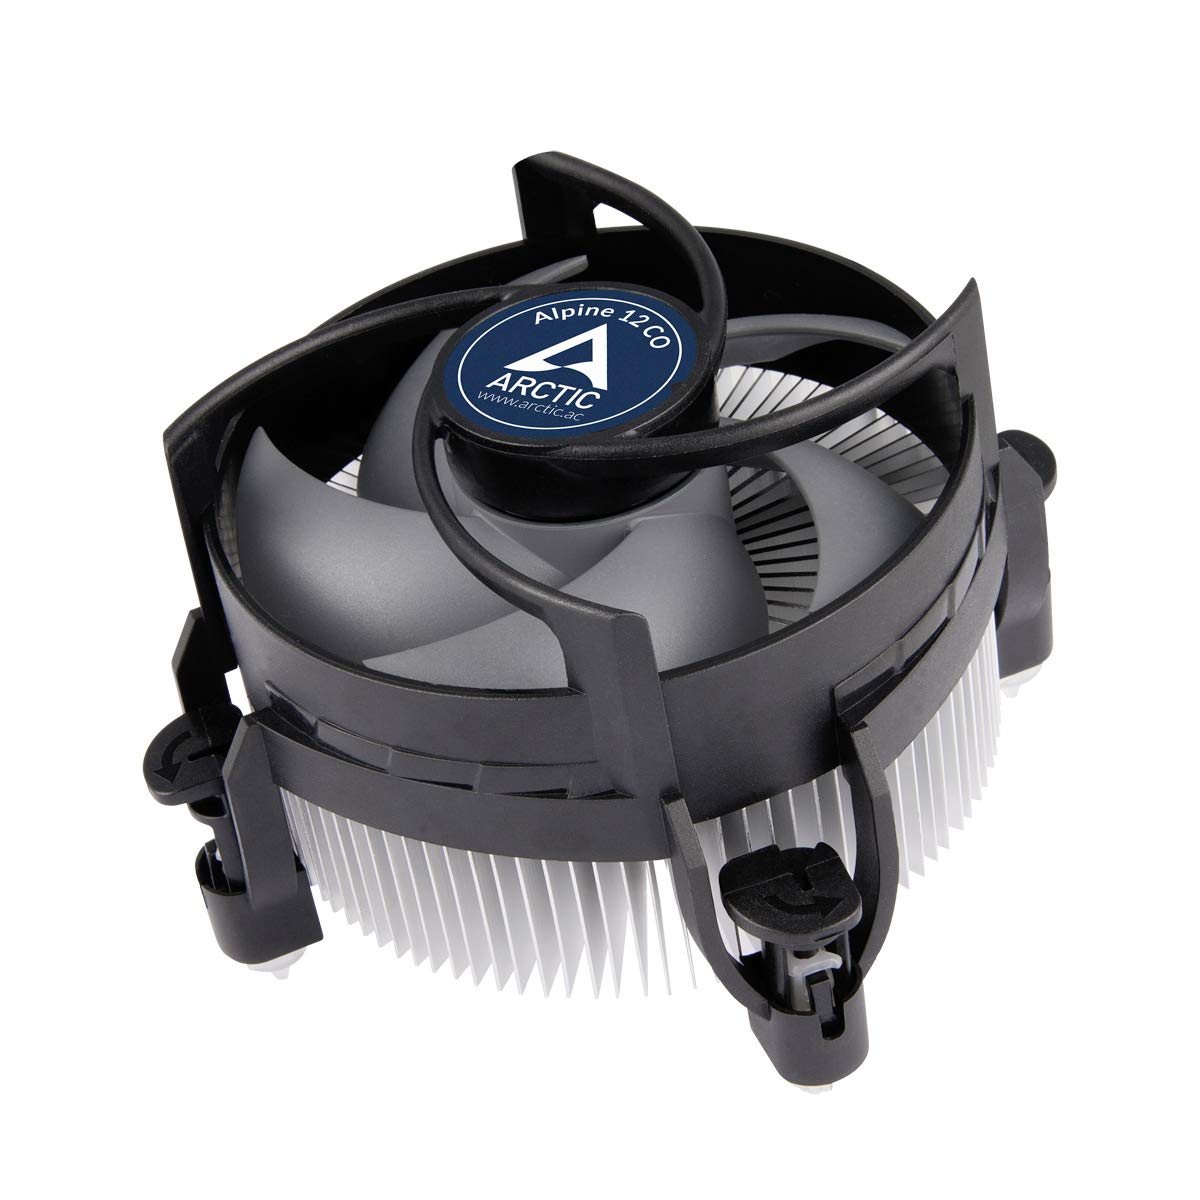 ARCTIC Alpine 12 CO - CPU Cooler for Intel Sockets for Conti